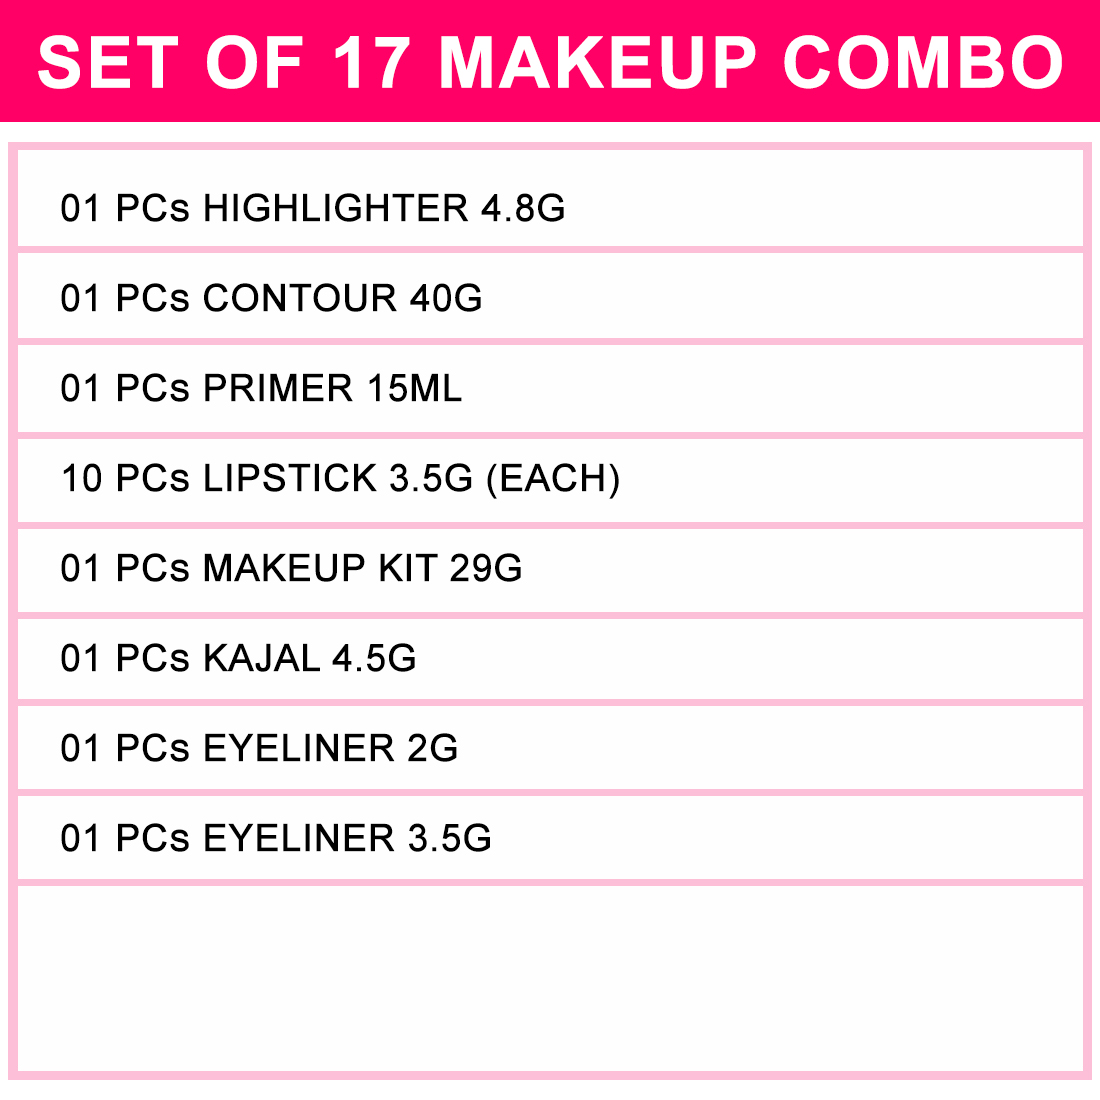 Adbeni All-in-one Budget Makeup Combo, Set of 17, GC1046